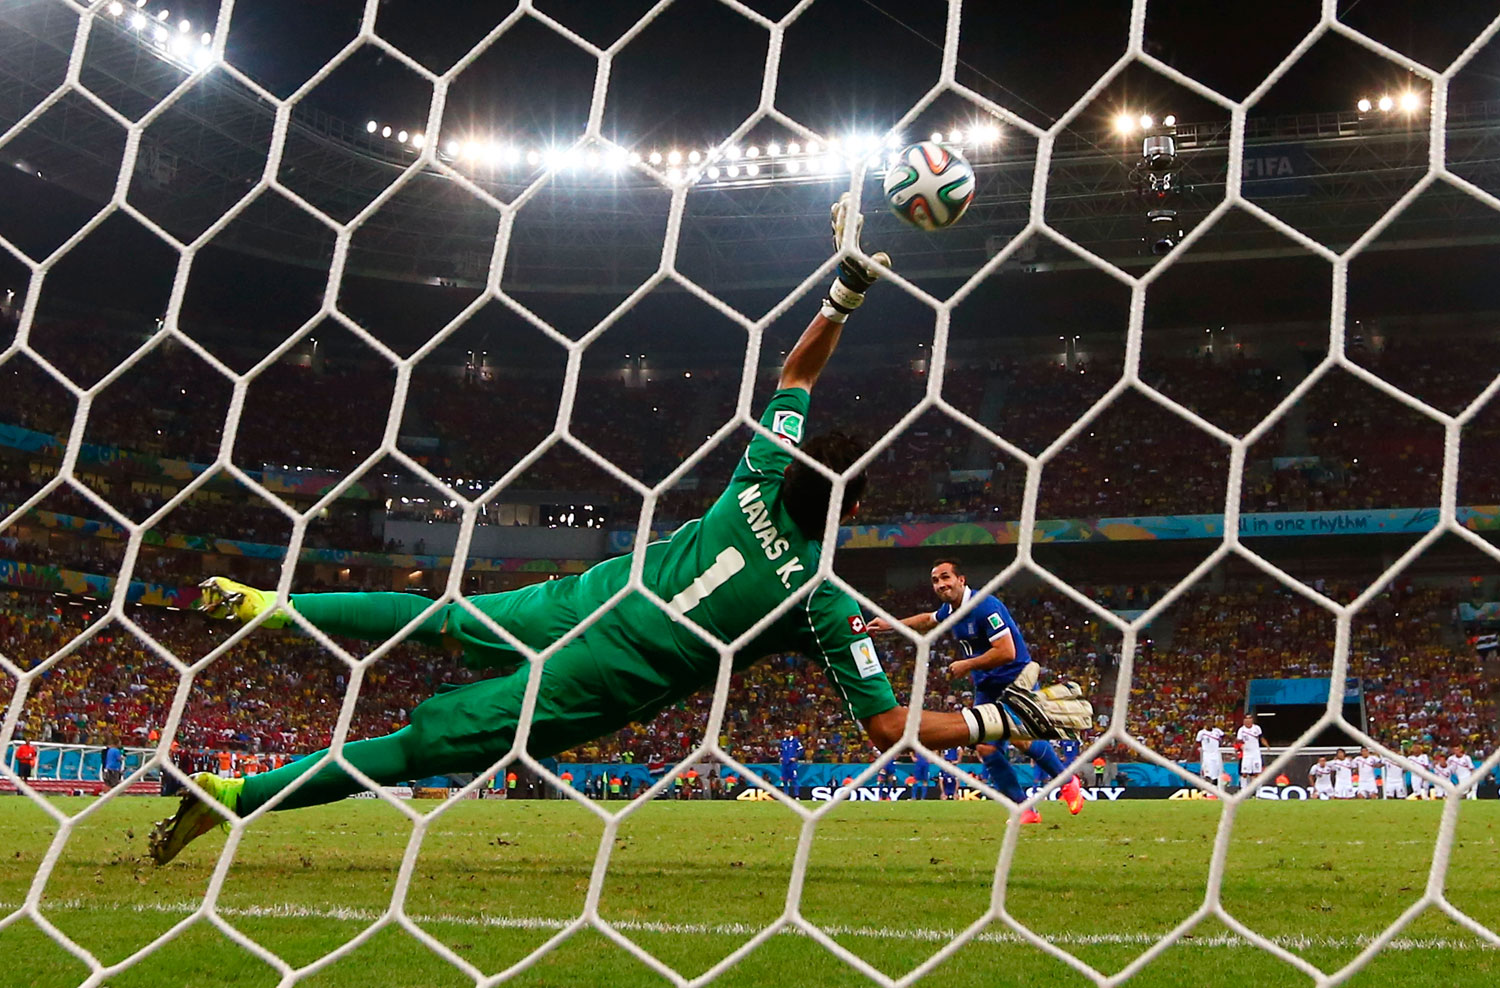 Costa Rica vs. Greece                                                              Theofanis Gekas of Greece has his penalty kick saved by Keylor Navas of Costa Rica during a shootout at Arena Pernambuco on June 29, 2014 in Recife, Brazil.